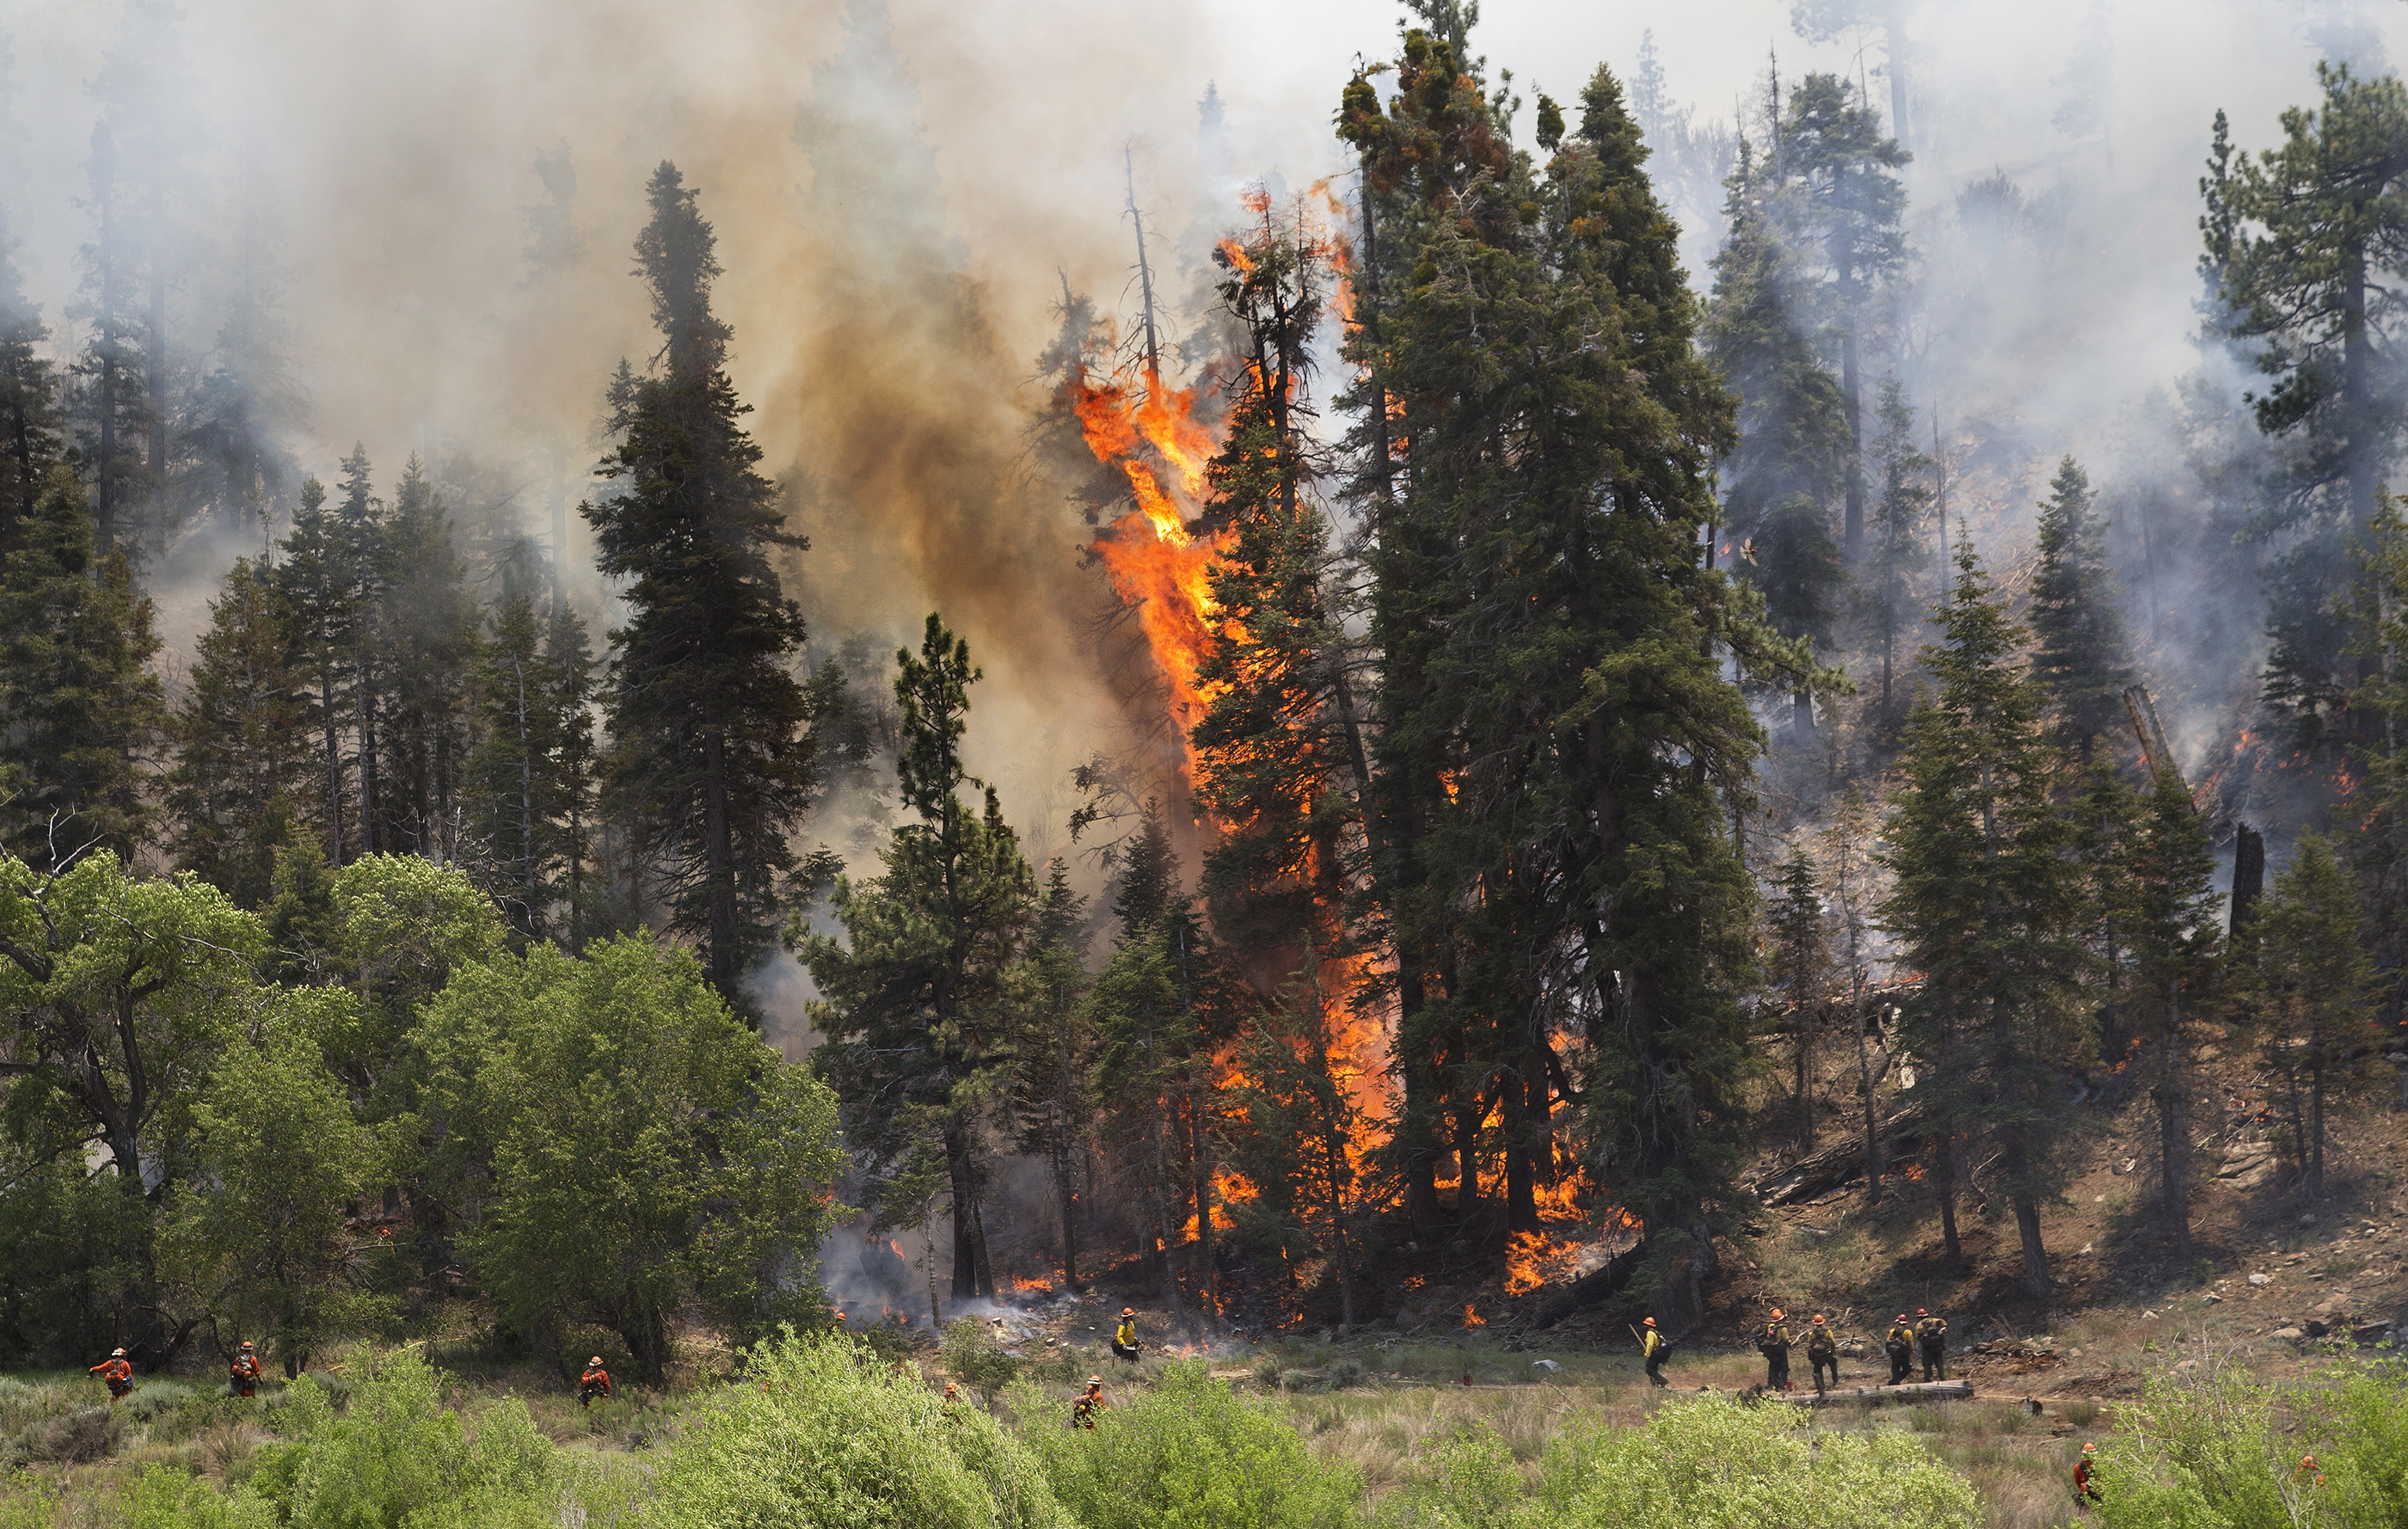 A tall pine tree erupts into flames as hotshot crews from Mill Creek keep the Lake Fire from crossing a meadow into Heart Bar Training Facility, Friday June 19, 2015 in the San Bernardino National Forest area of Angelus Oaks, Calif. (Gina Ferazzi/Los Angeles Times via AP)